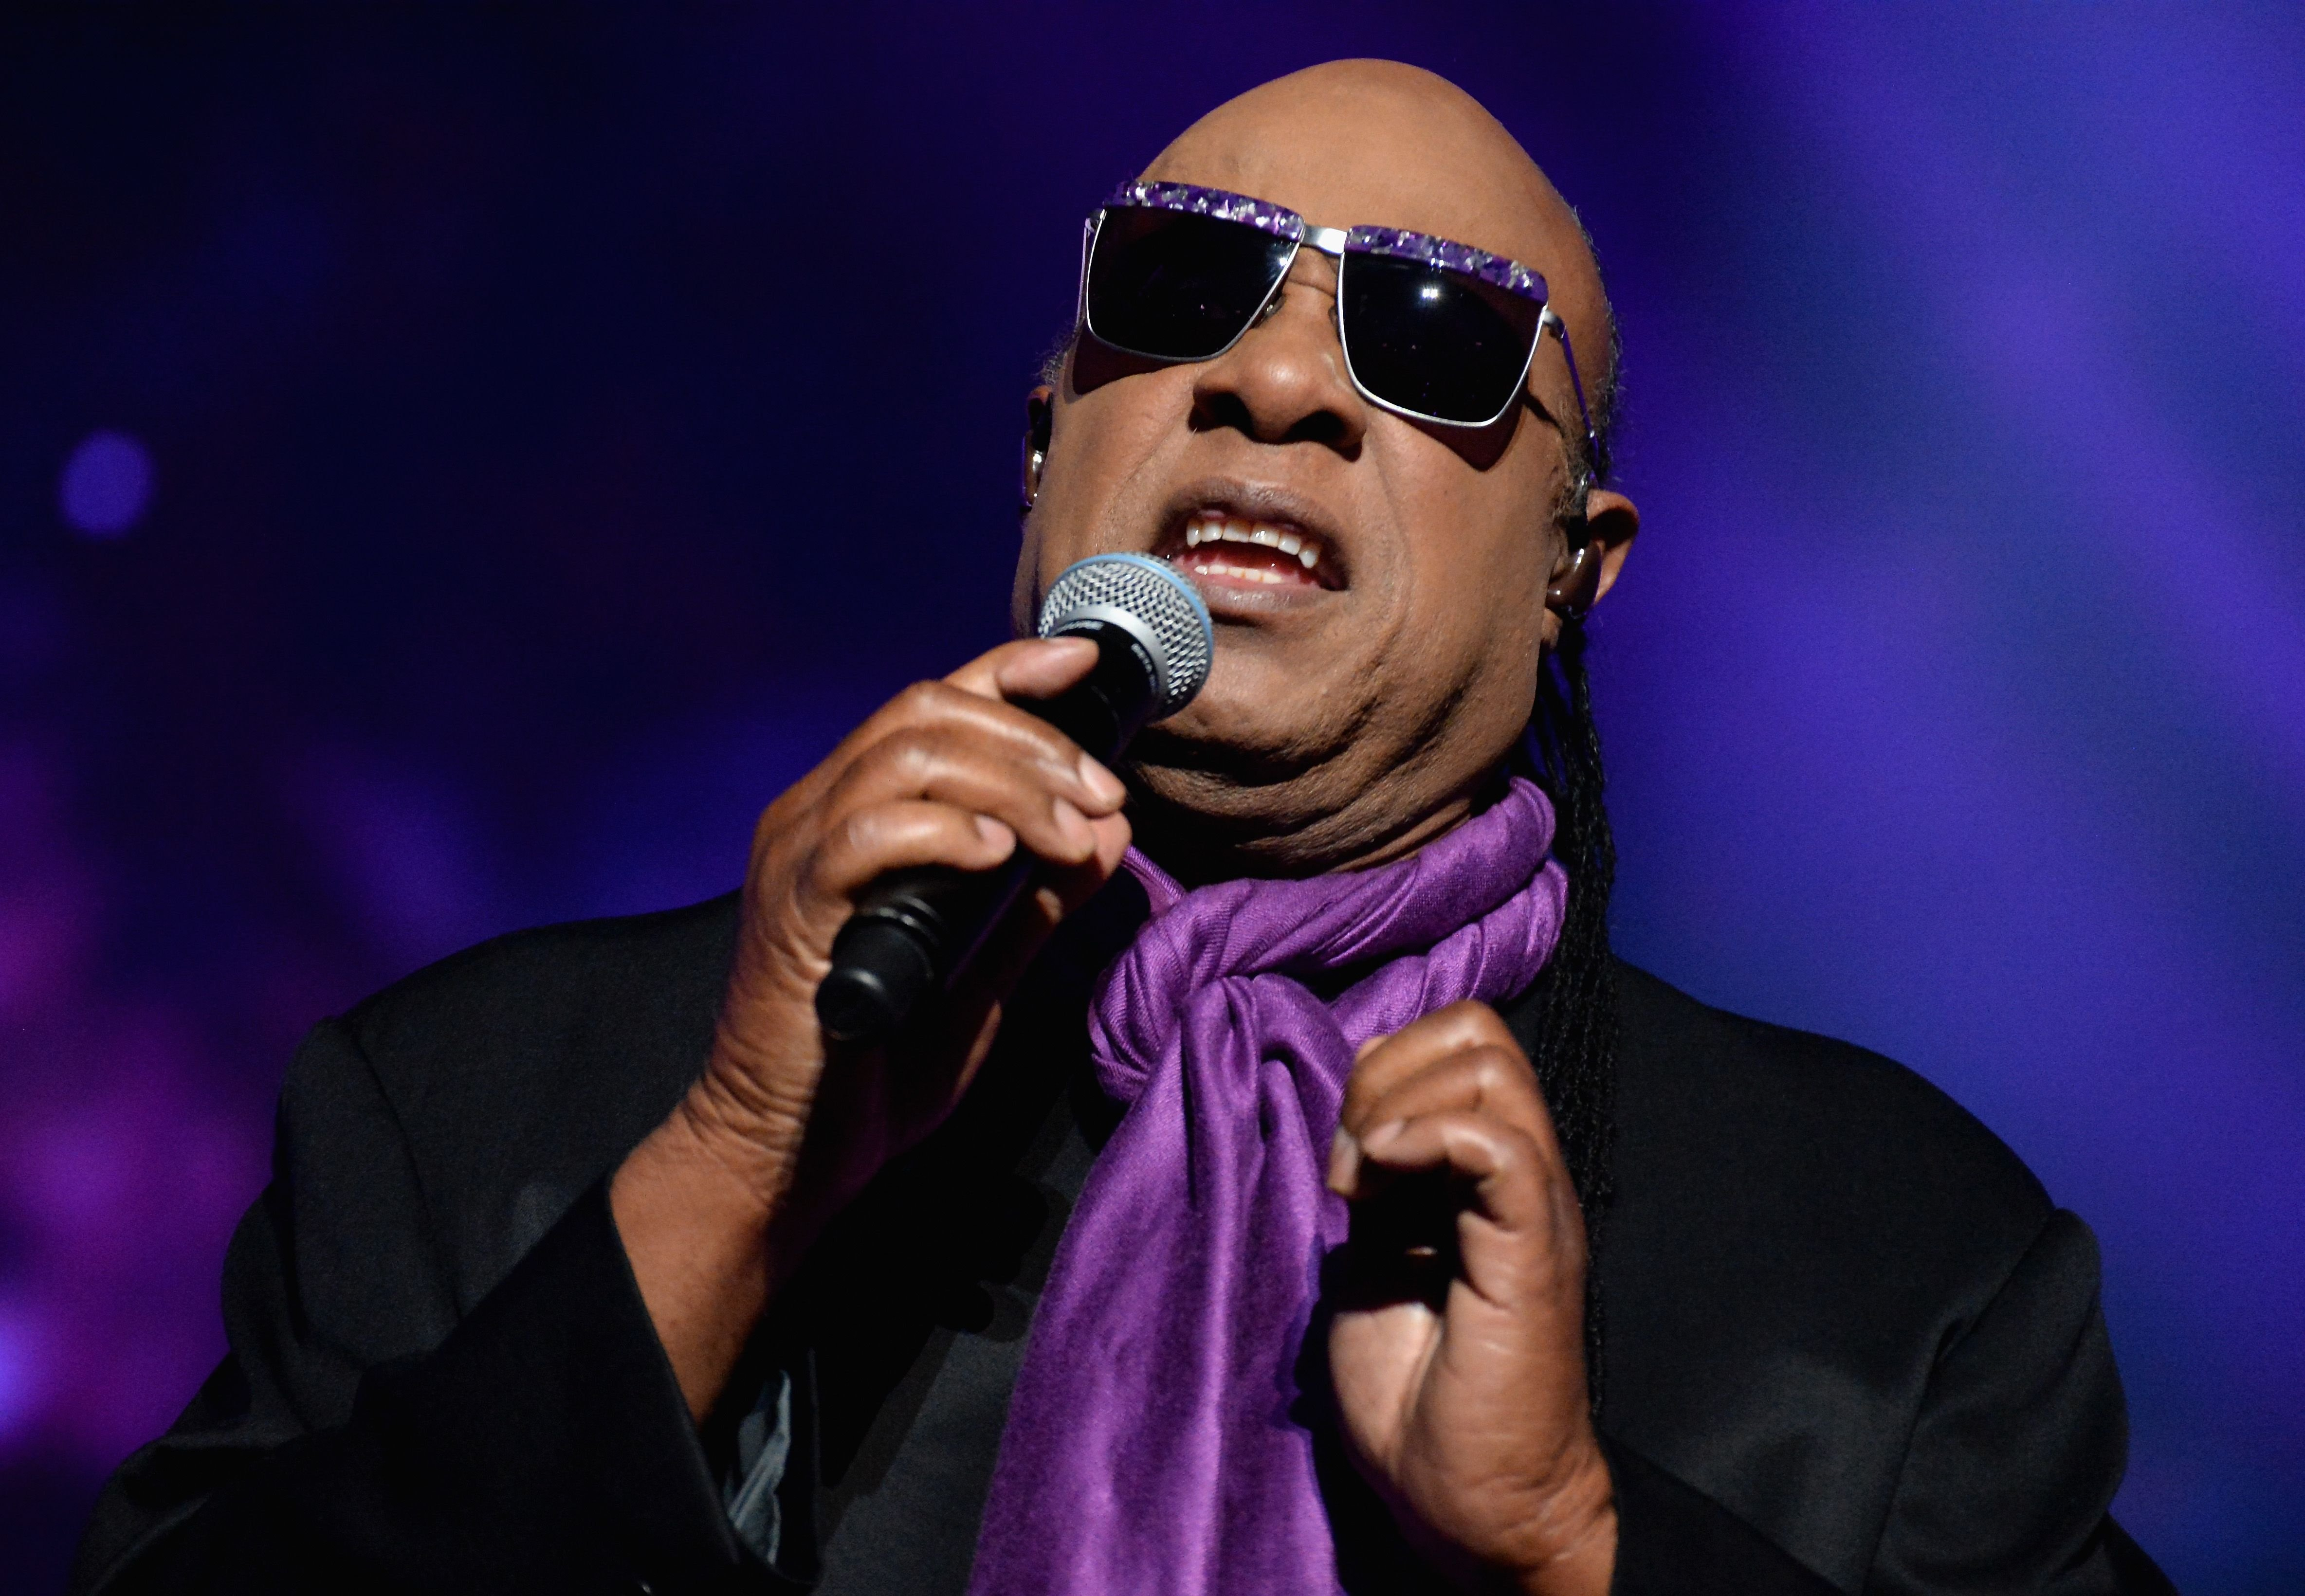 Stevie Wonder performs onstage during the 2016 Billboard Music Awards at T-Mobile Arena on May 22, 2016 in Las Vegas, Nevada   Source: Getty Images